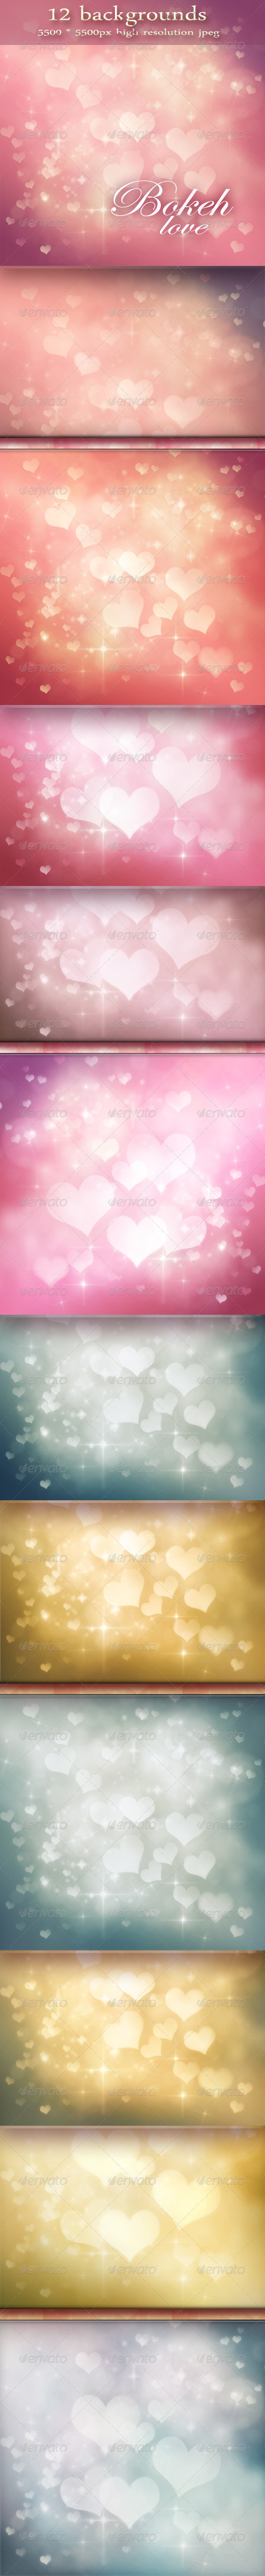 Graphic River Festive Bokeh Backgrounds Valentine s Day Graphics -  Backgrounds 1474916